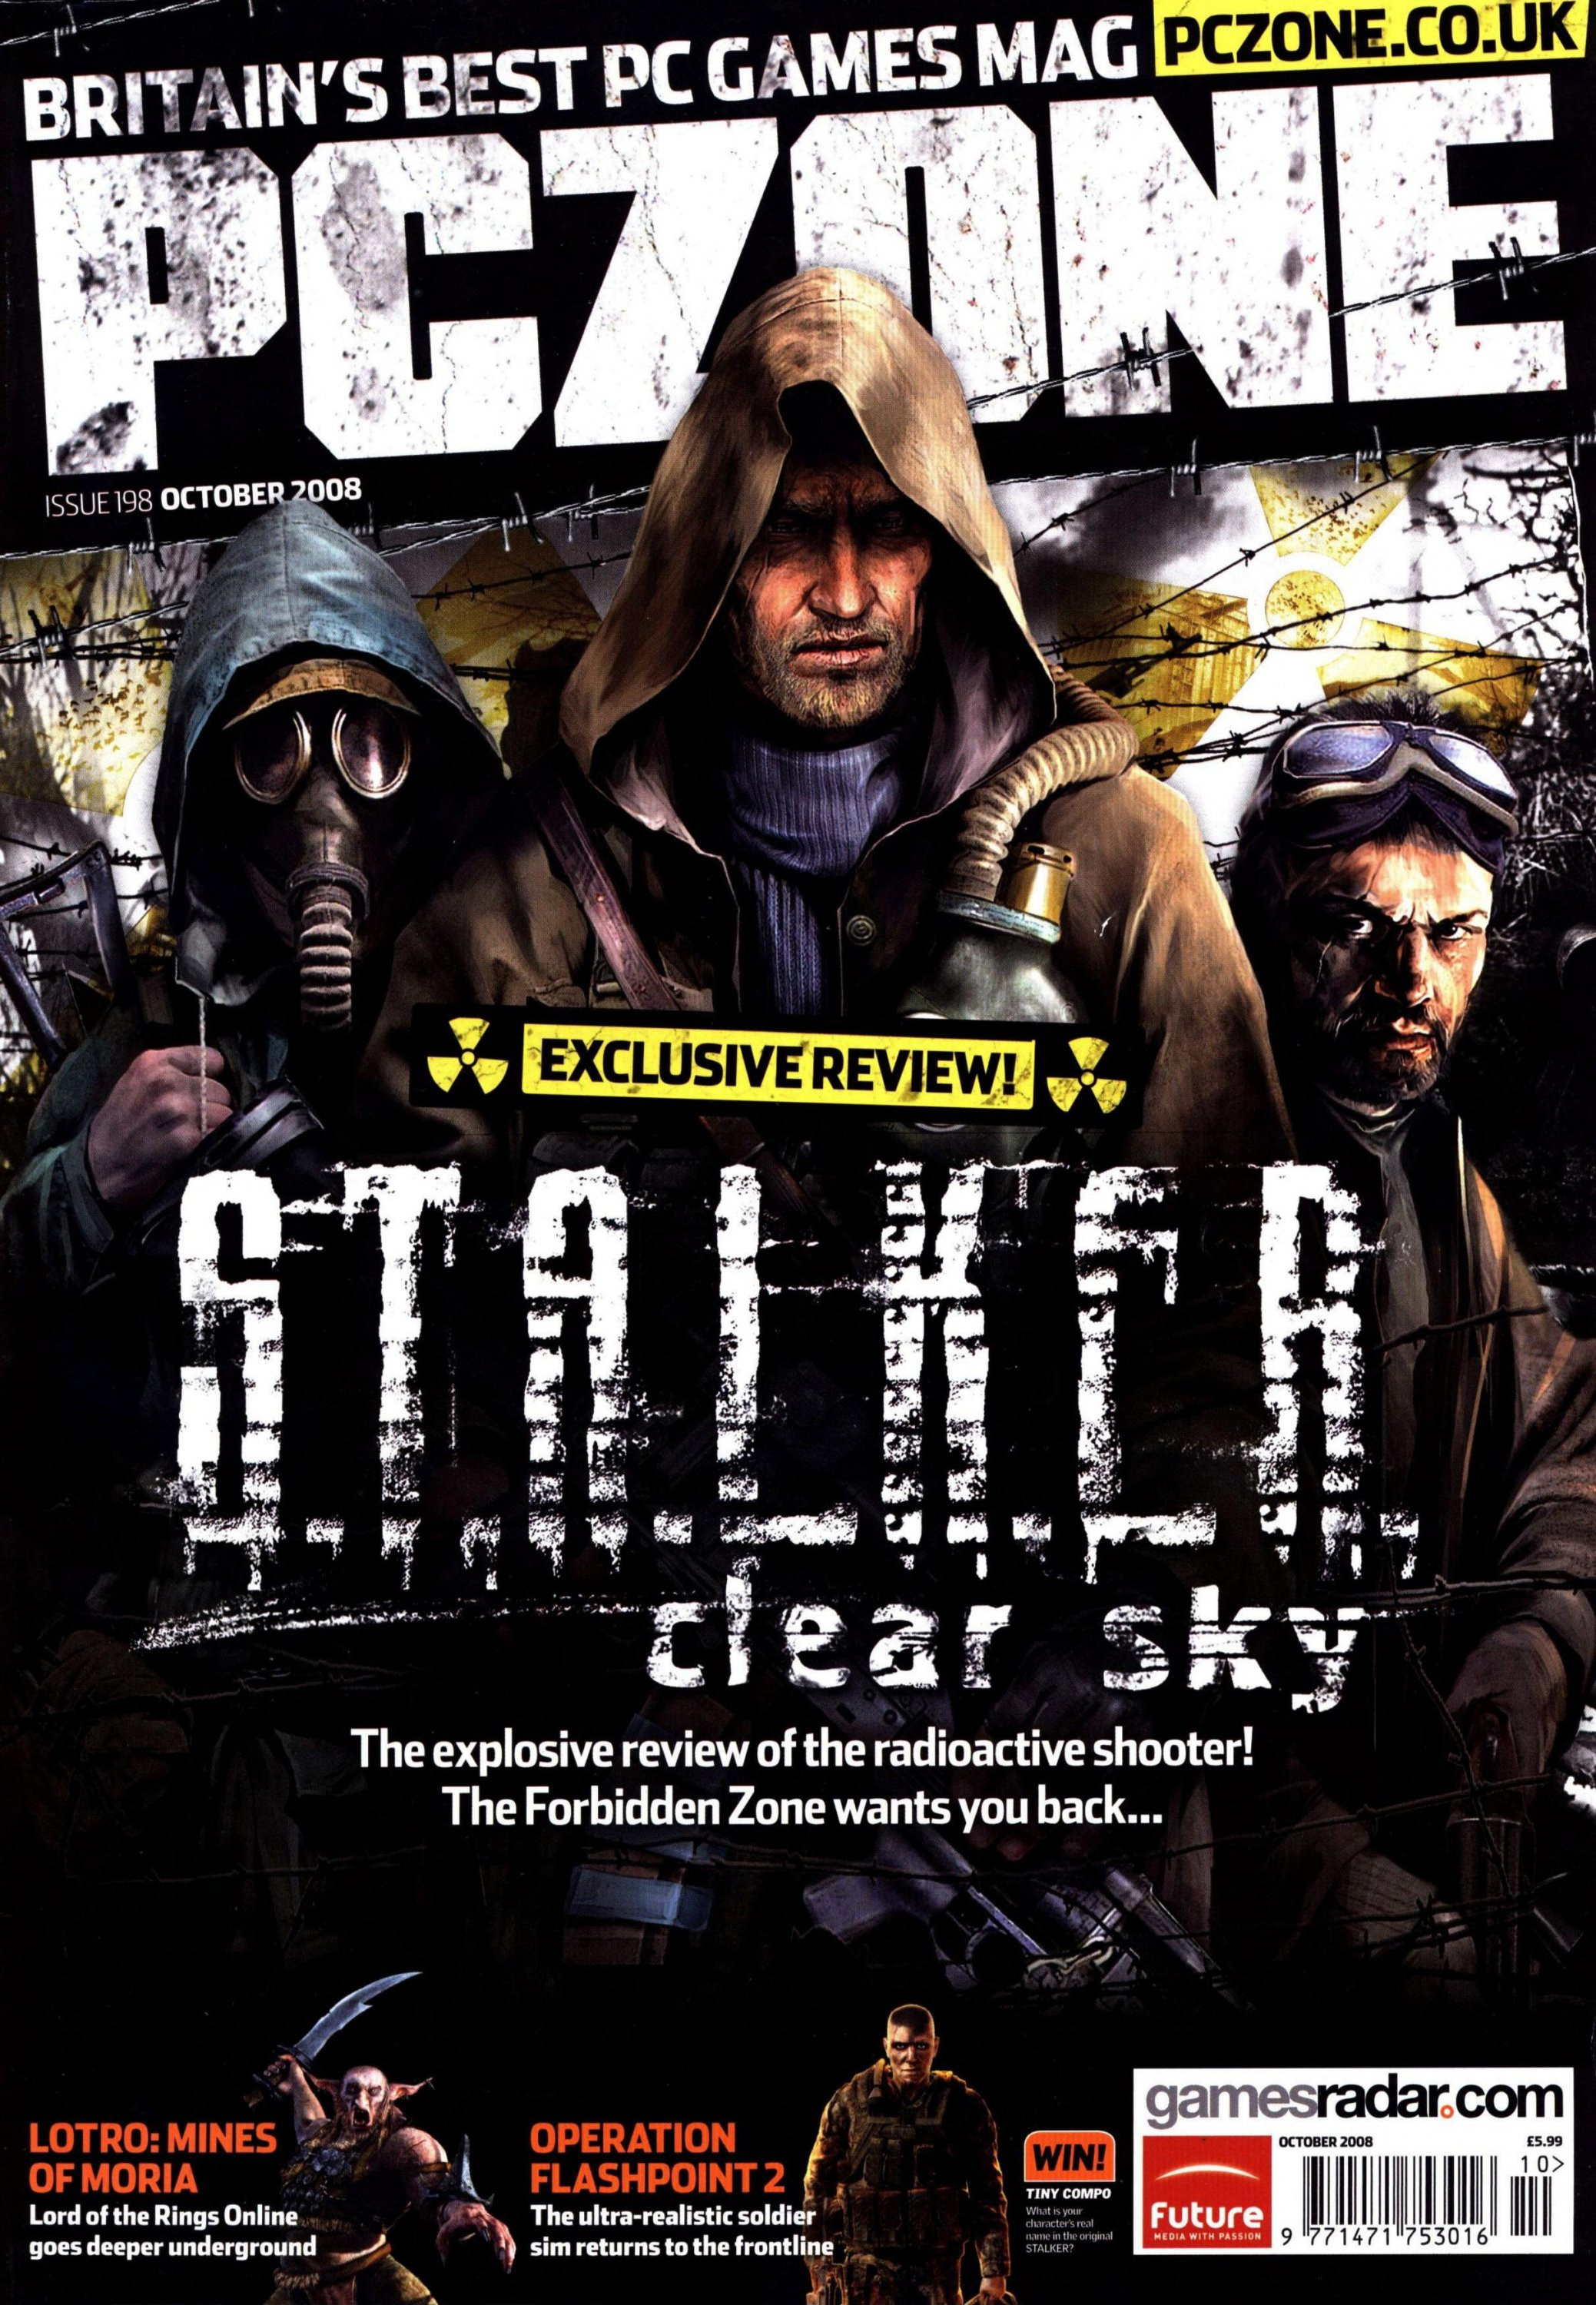 PC Zone Issue 198 (October 2008)